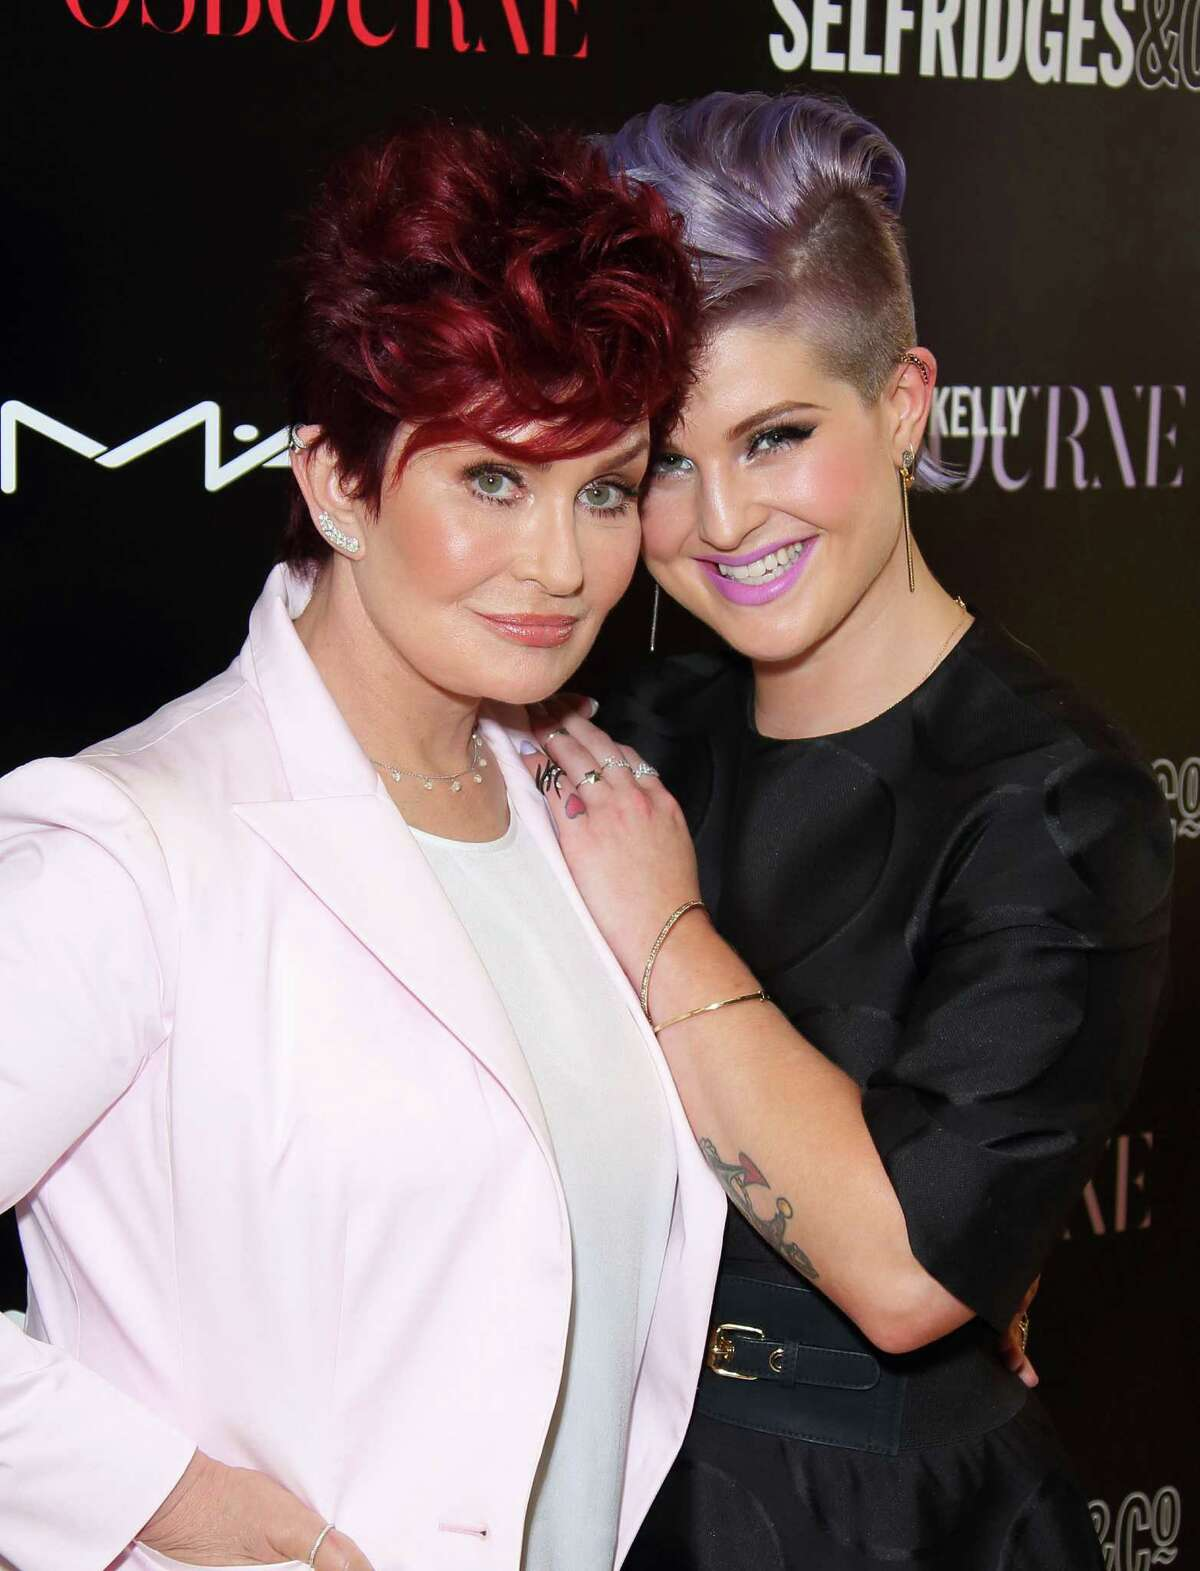 Sharon (born in 1952) and Kelly Osbourne (born in 1984)